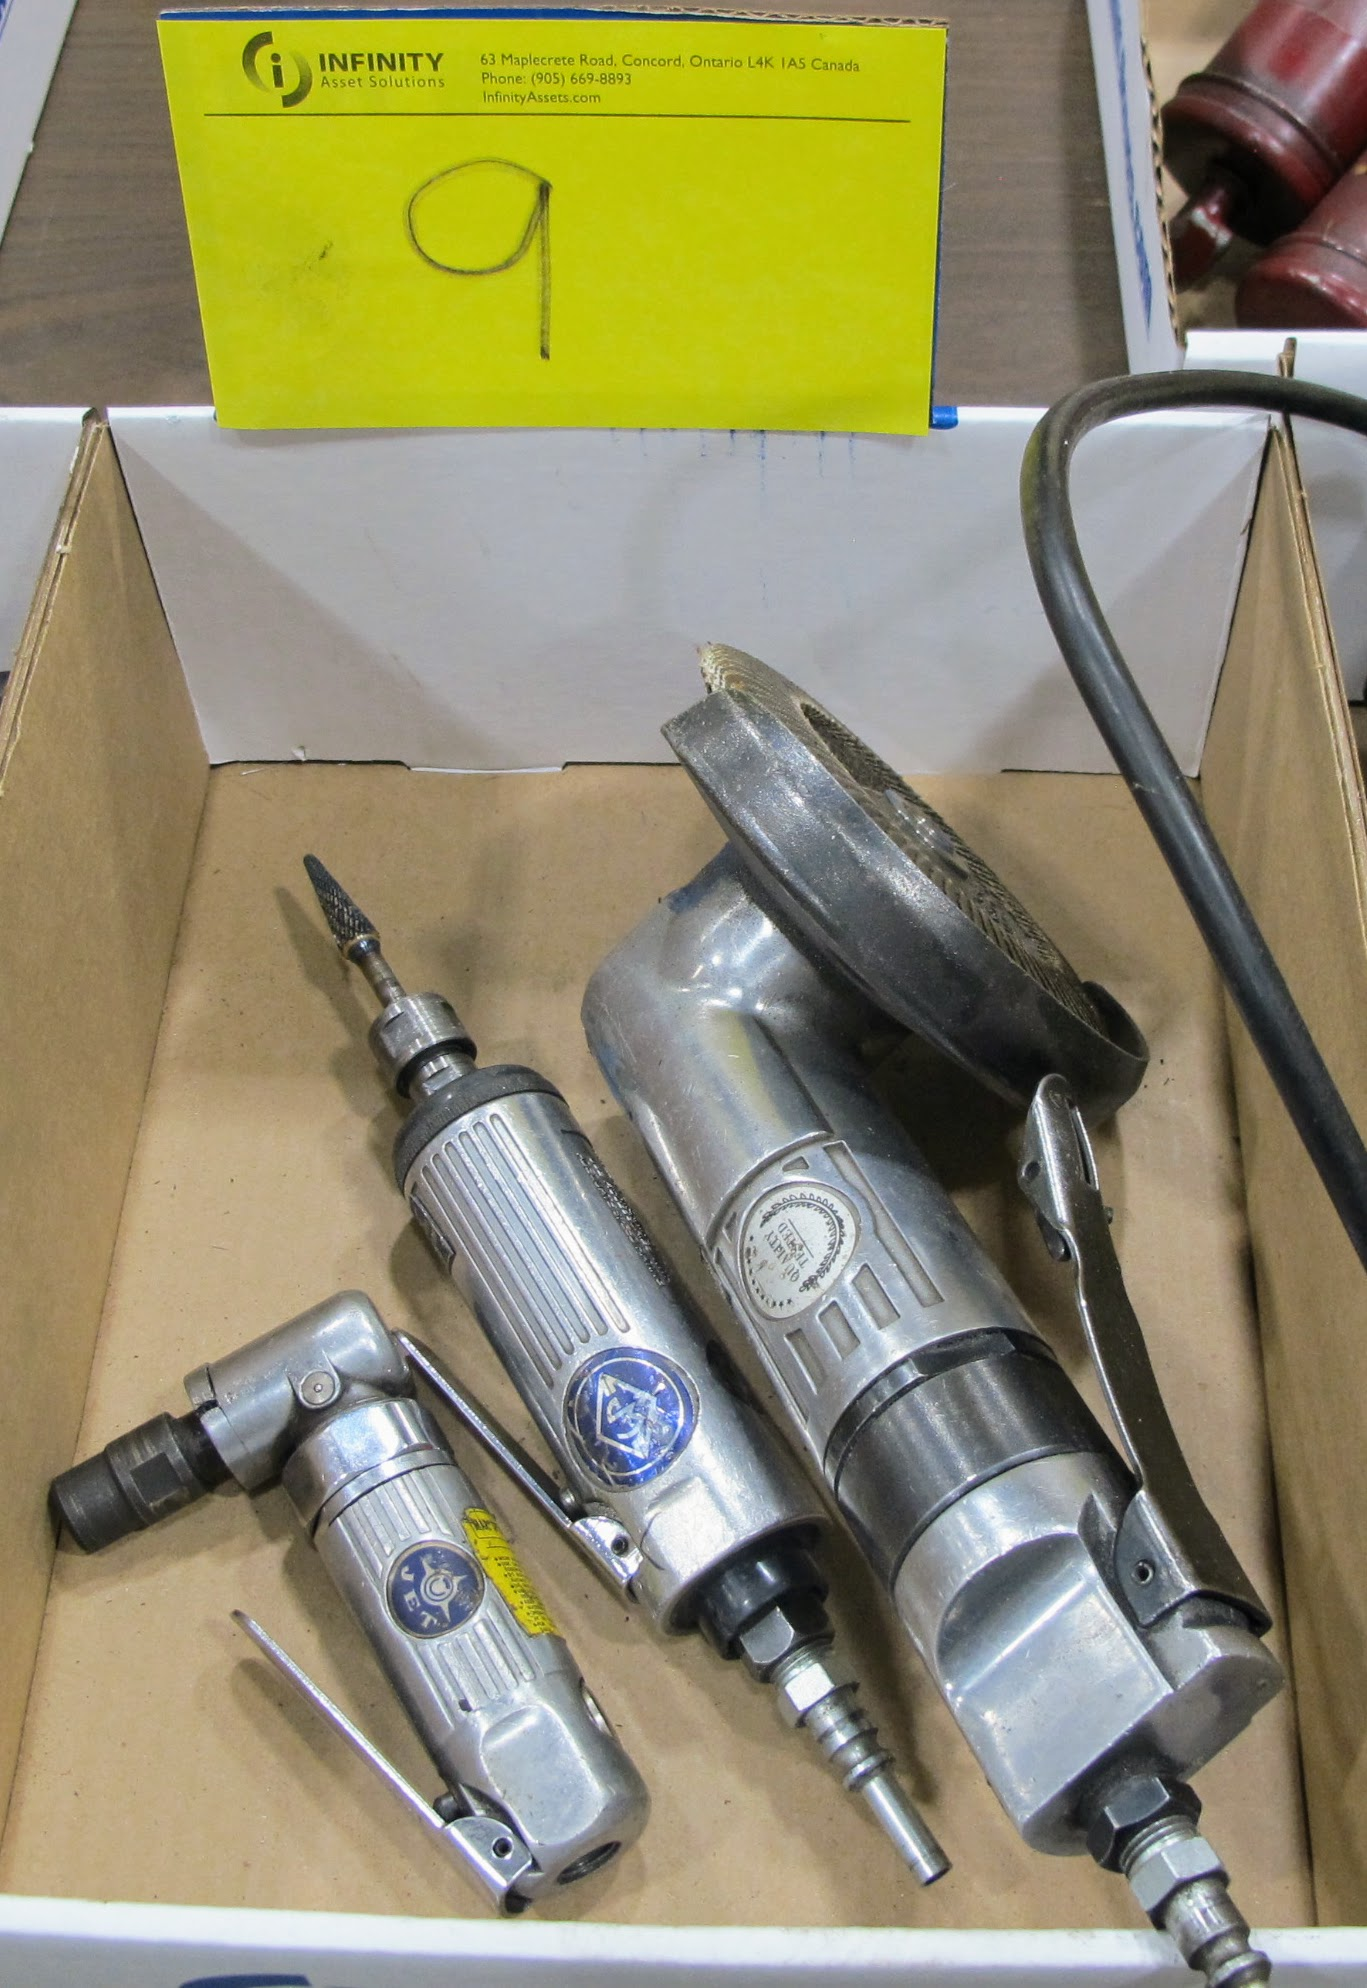 1 BOX OF PNEUMATIC TOOLS (RIGHT ANGLE GRINDER, DRIVER, ANGLE GRINDER)